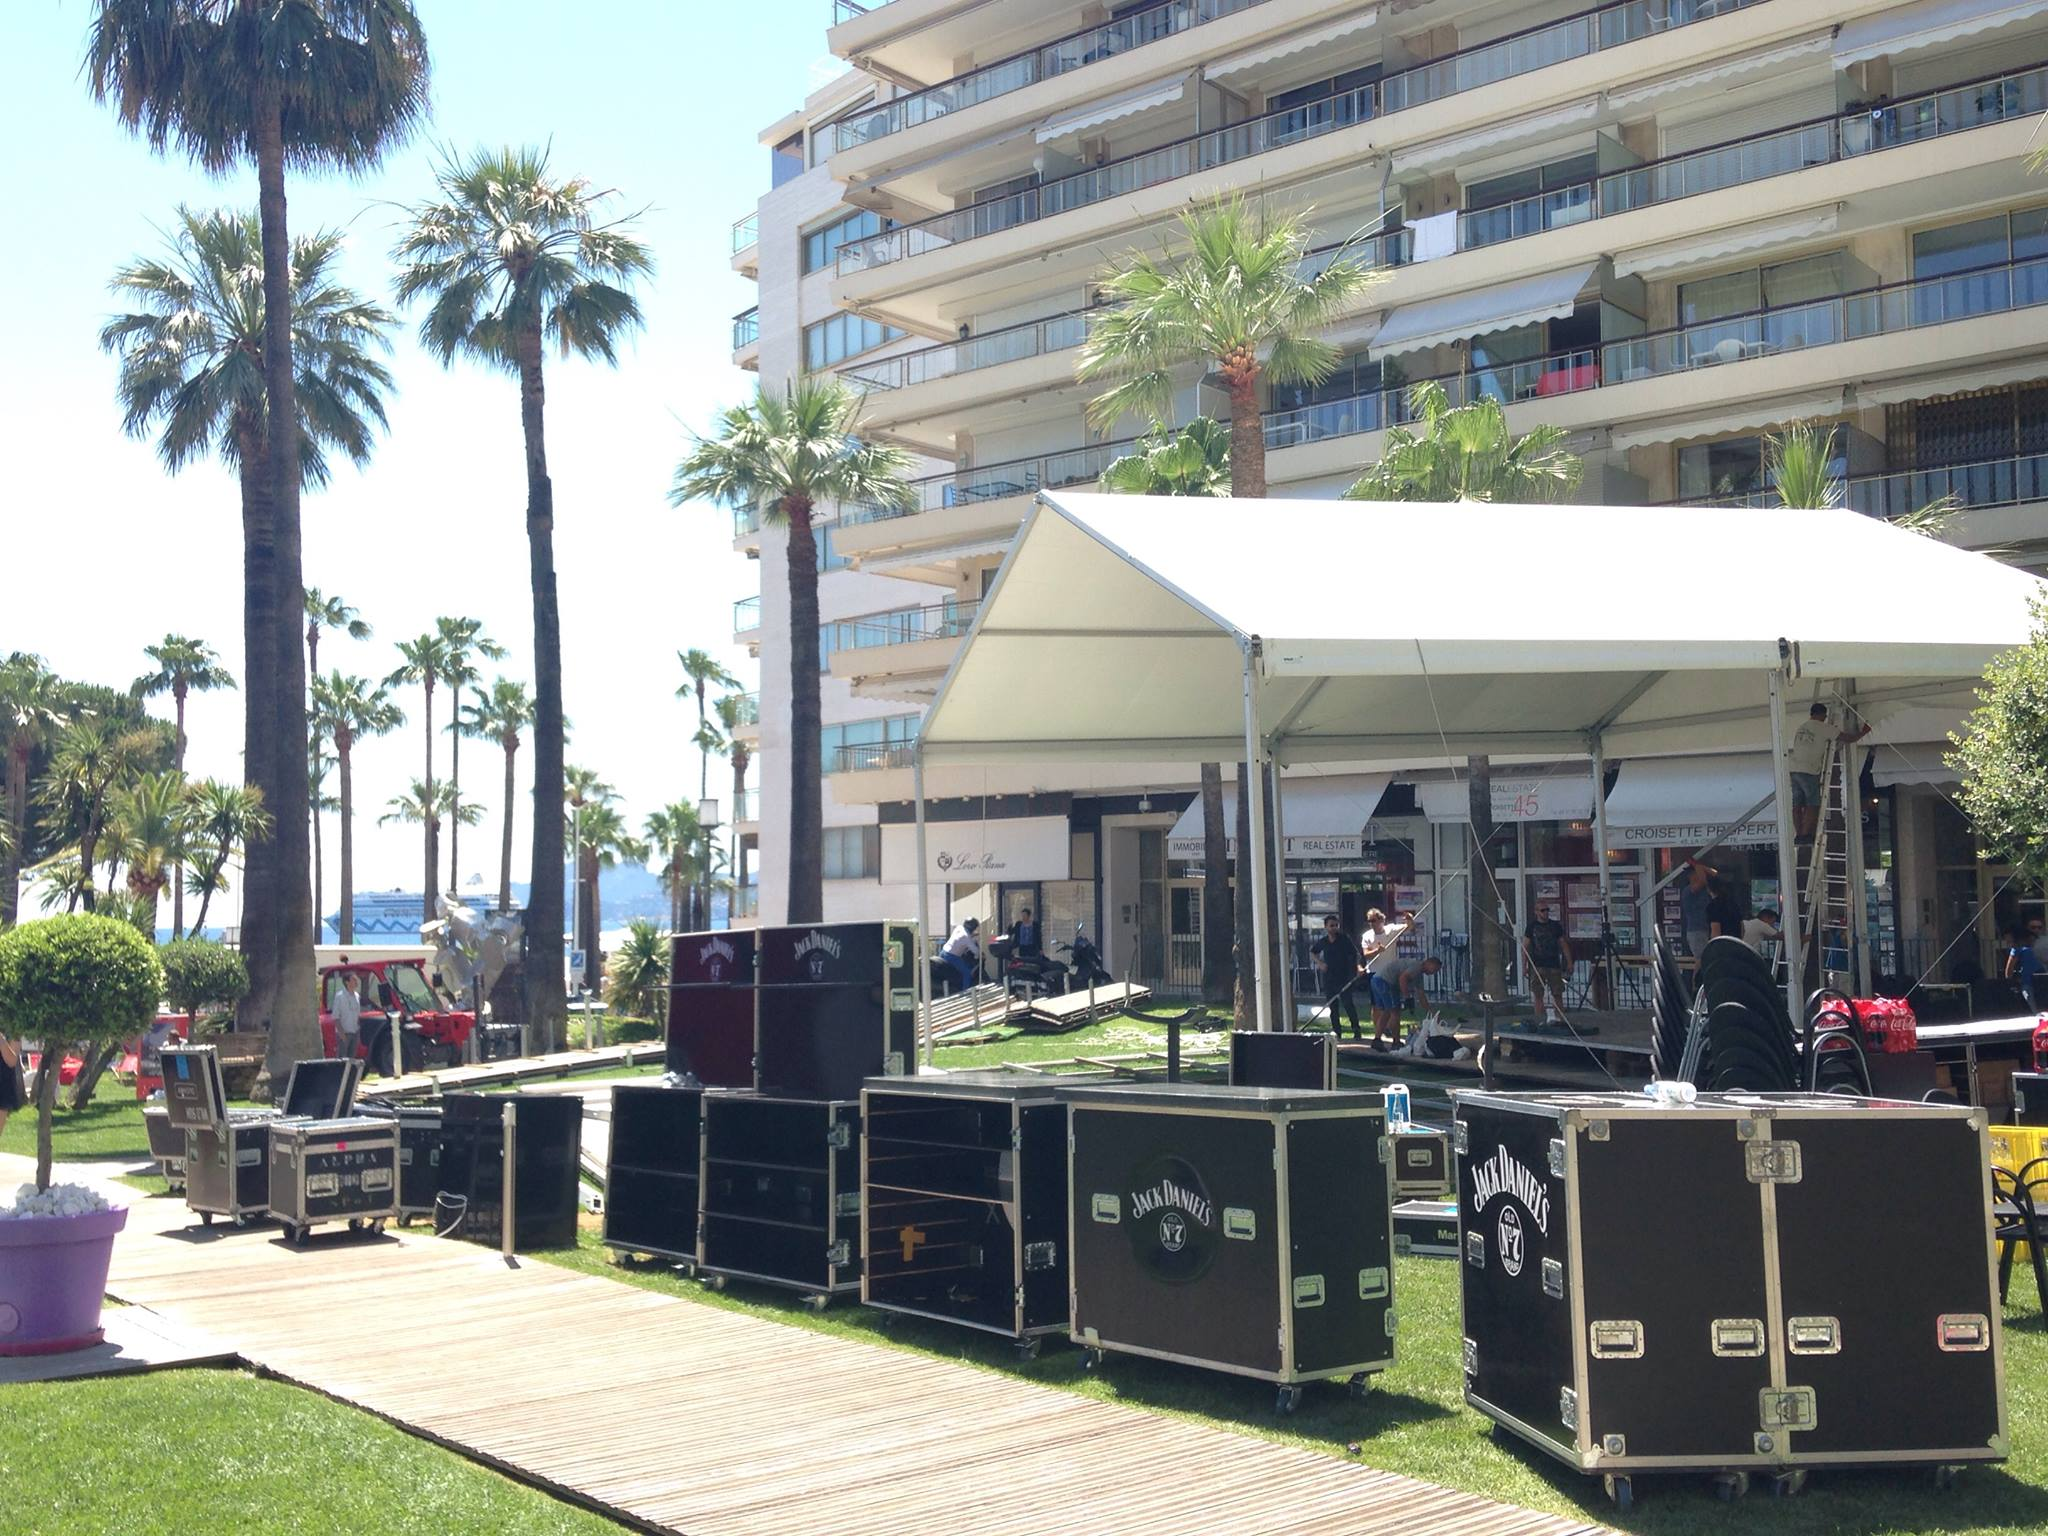 Music Producer and Guest DJ for Lion Award event in Cannes, France for client Jack Daniels.